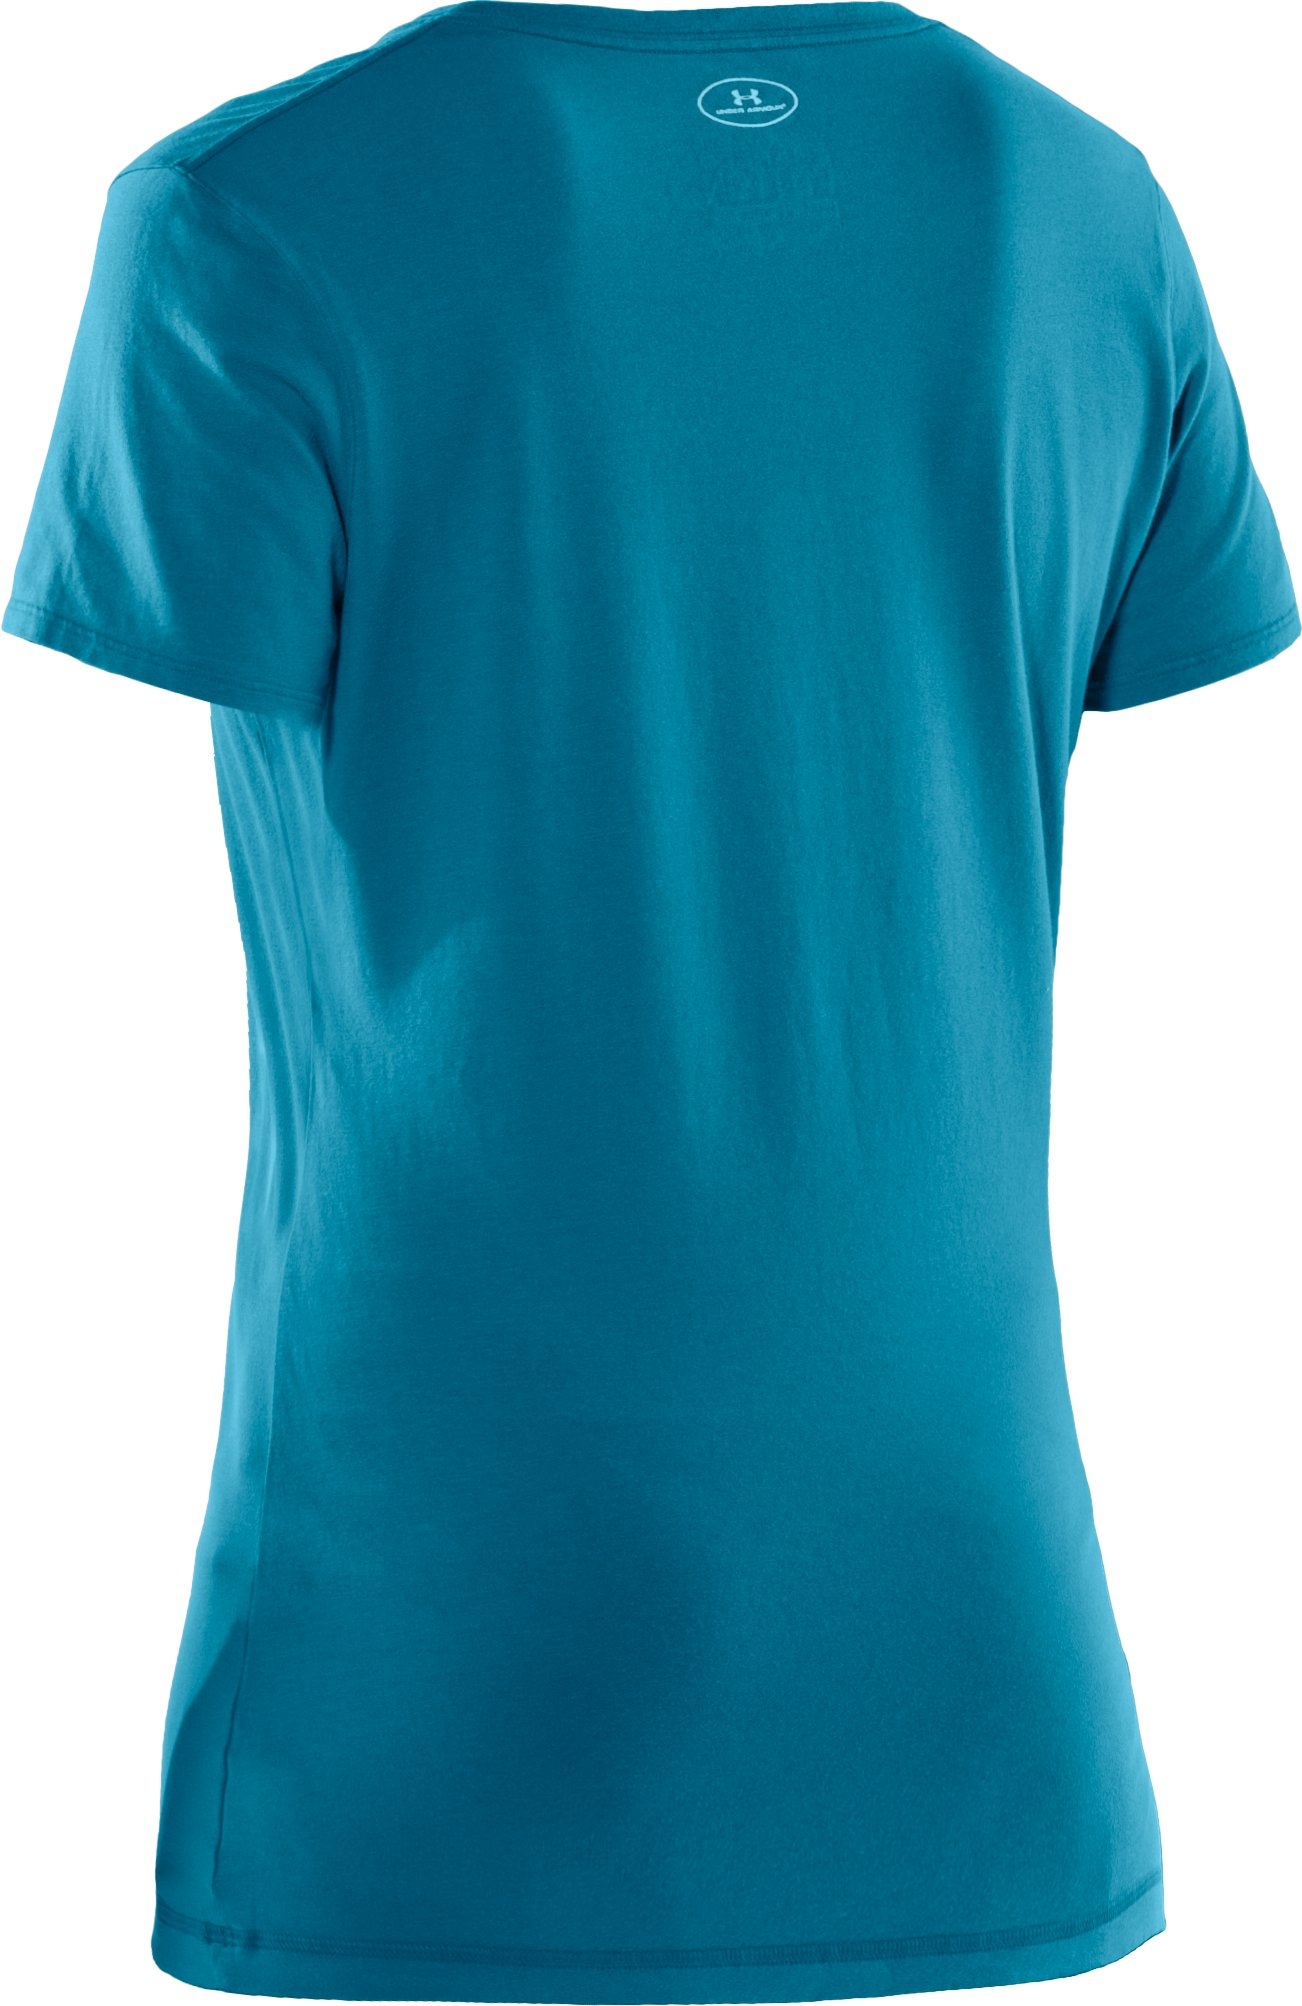 Women's Charged Cotton® Sassy Scoop T-Shirt, Break